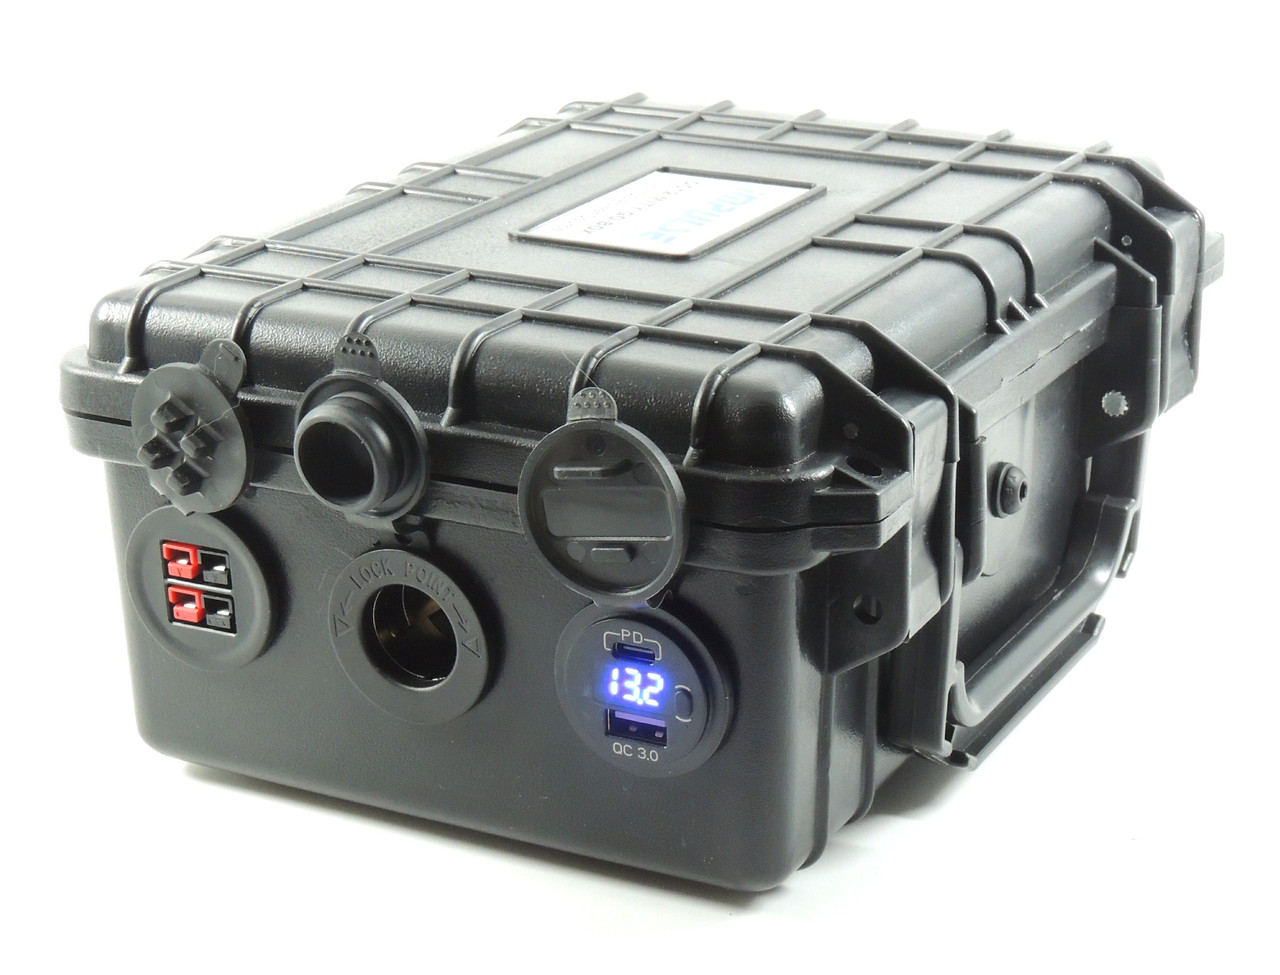 DC12 MITY-T300 GO-BOX for LiFePO4 Battery and Charger